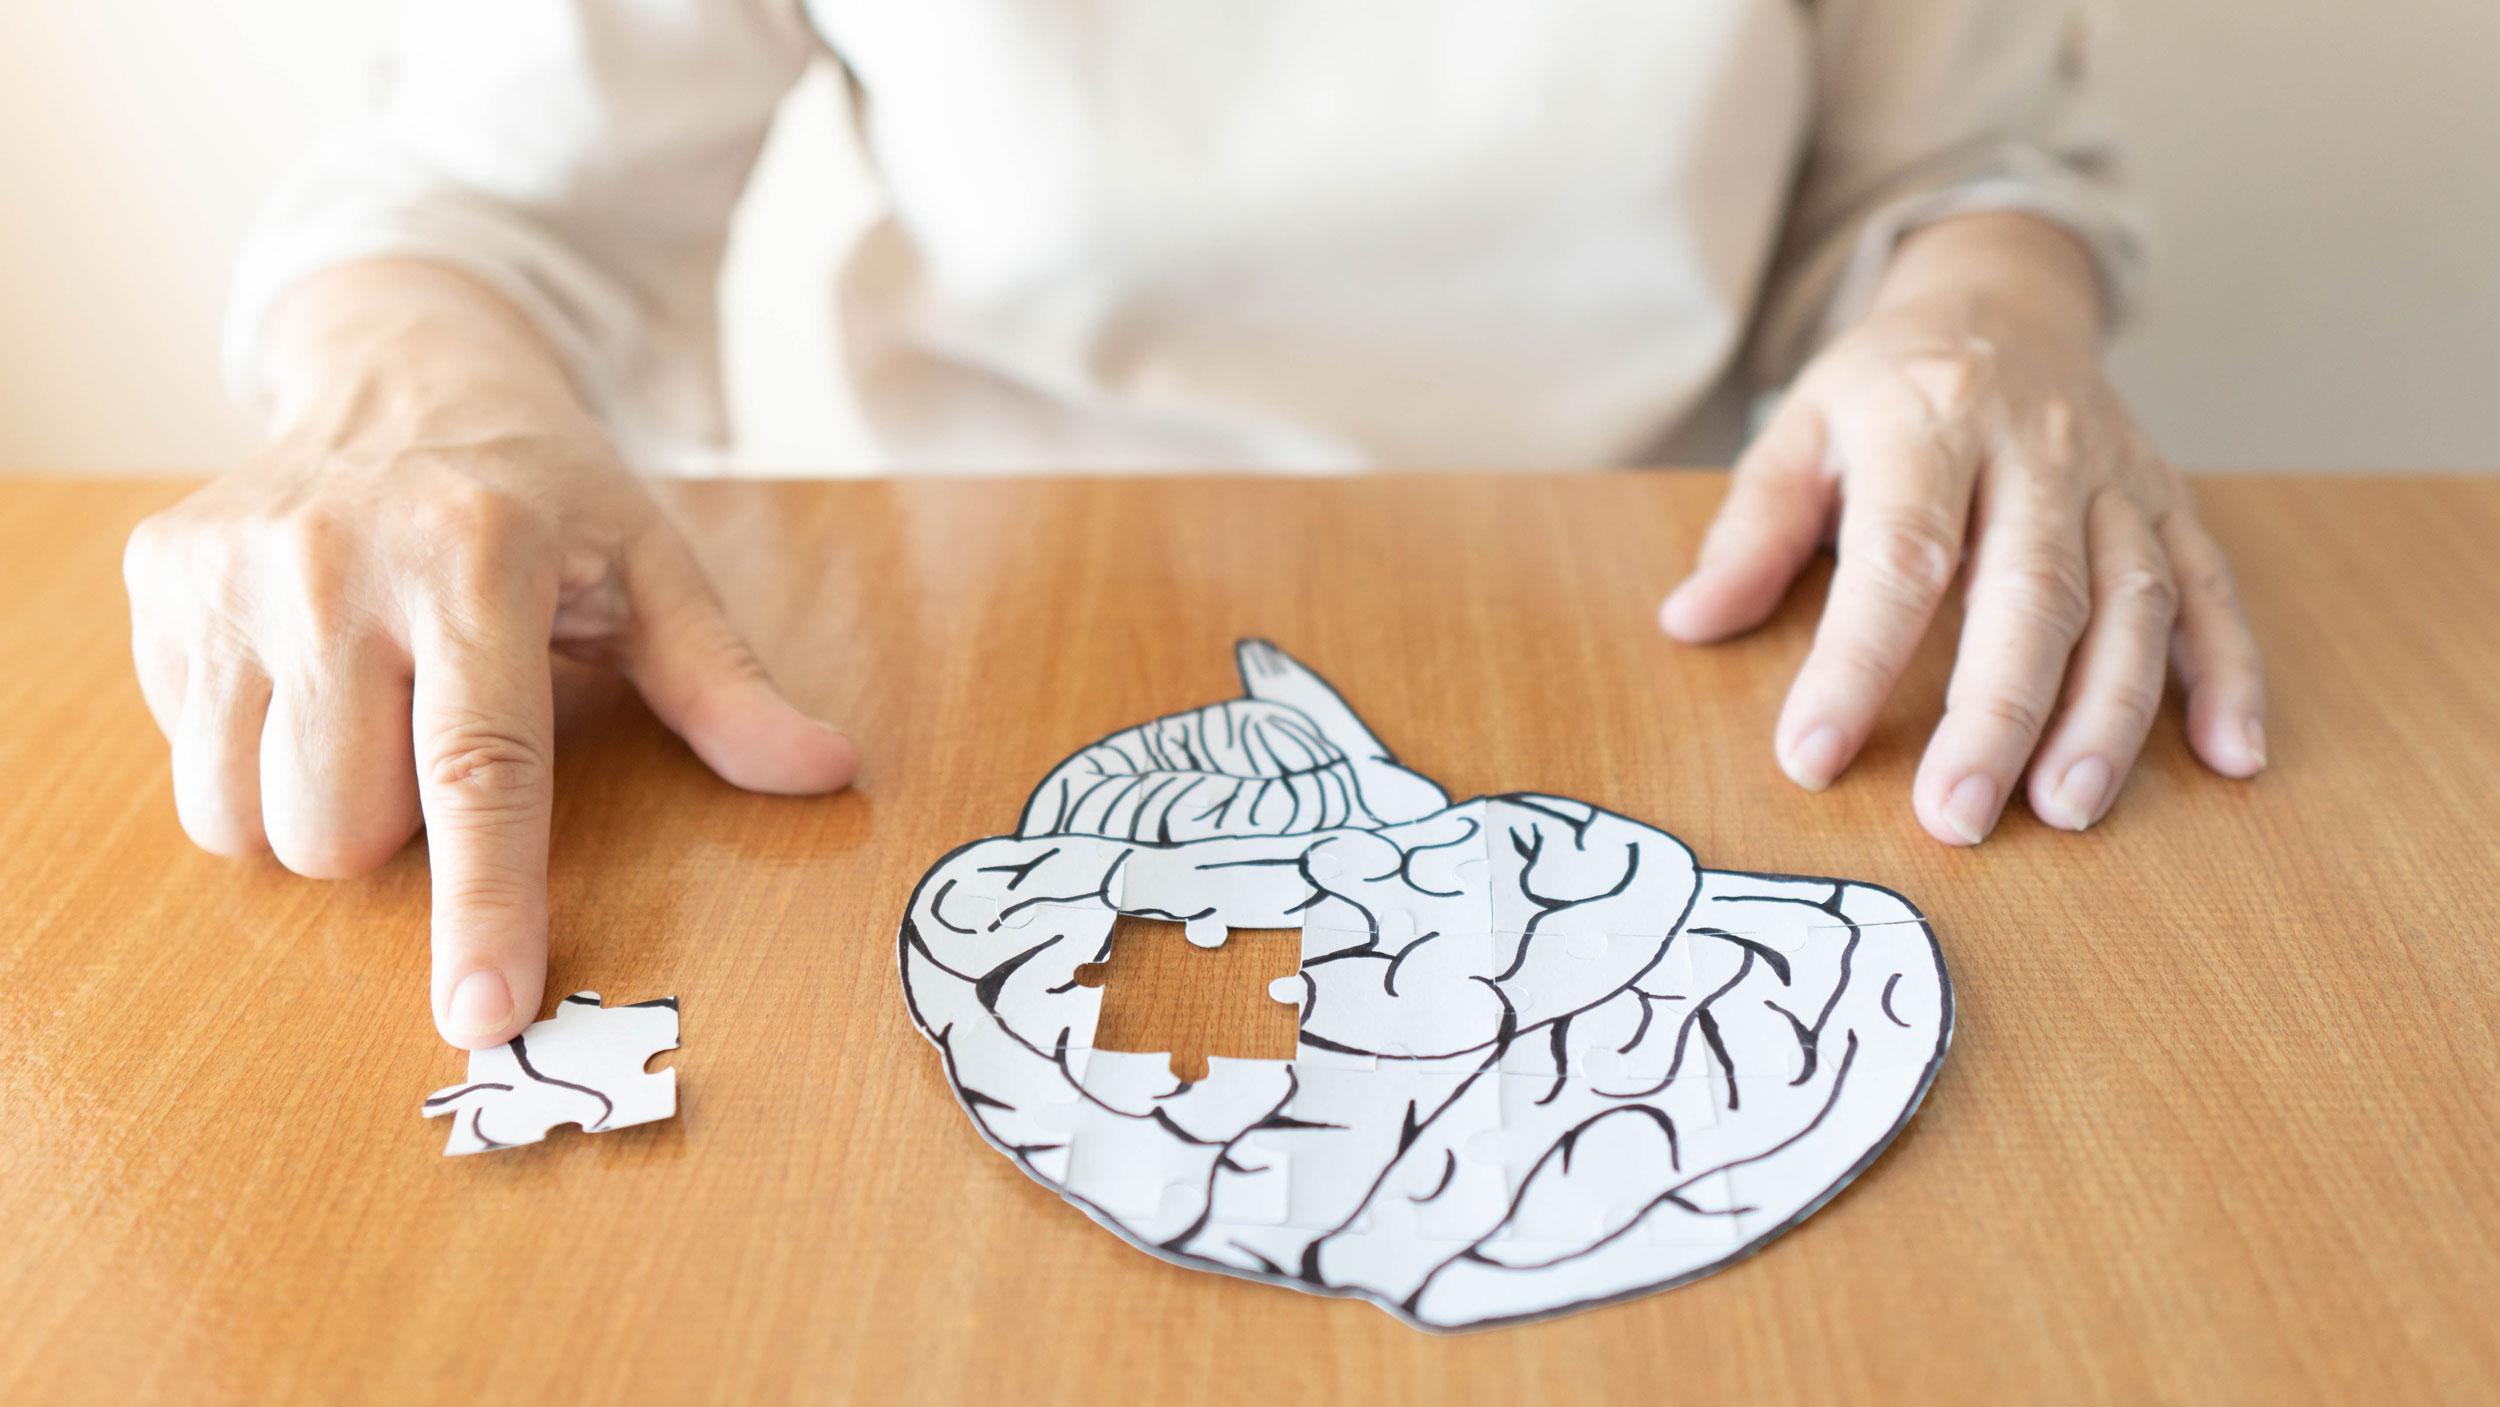 Medical researchers in Sweden and the Netherlands announced on Monday their development of a tool that takes into account the degree of dementia and coexisting health disorders, if any, to compute the three-year survival probability for individual patients.